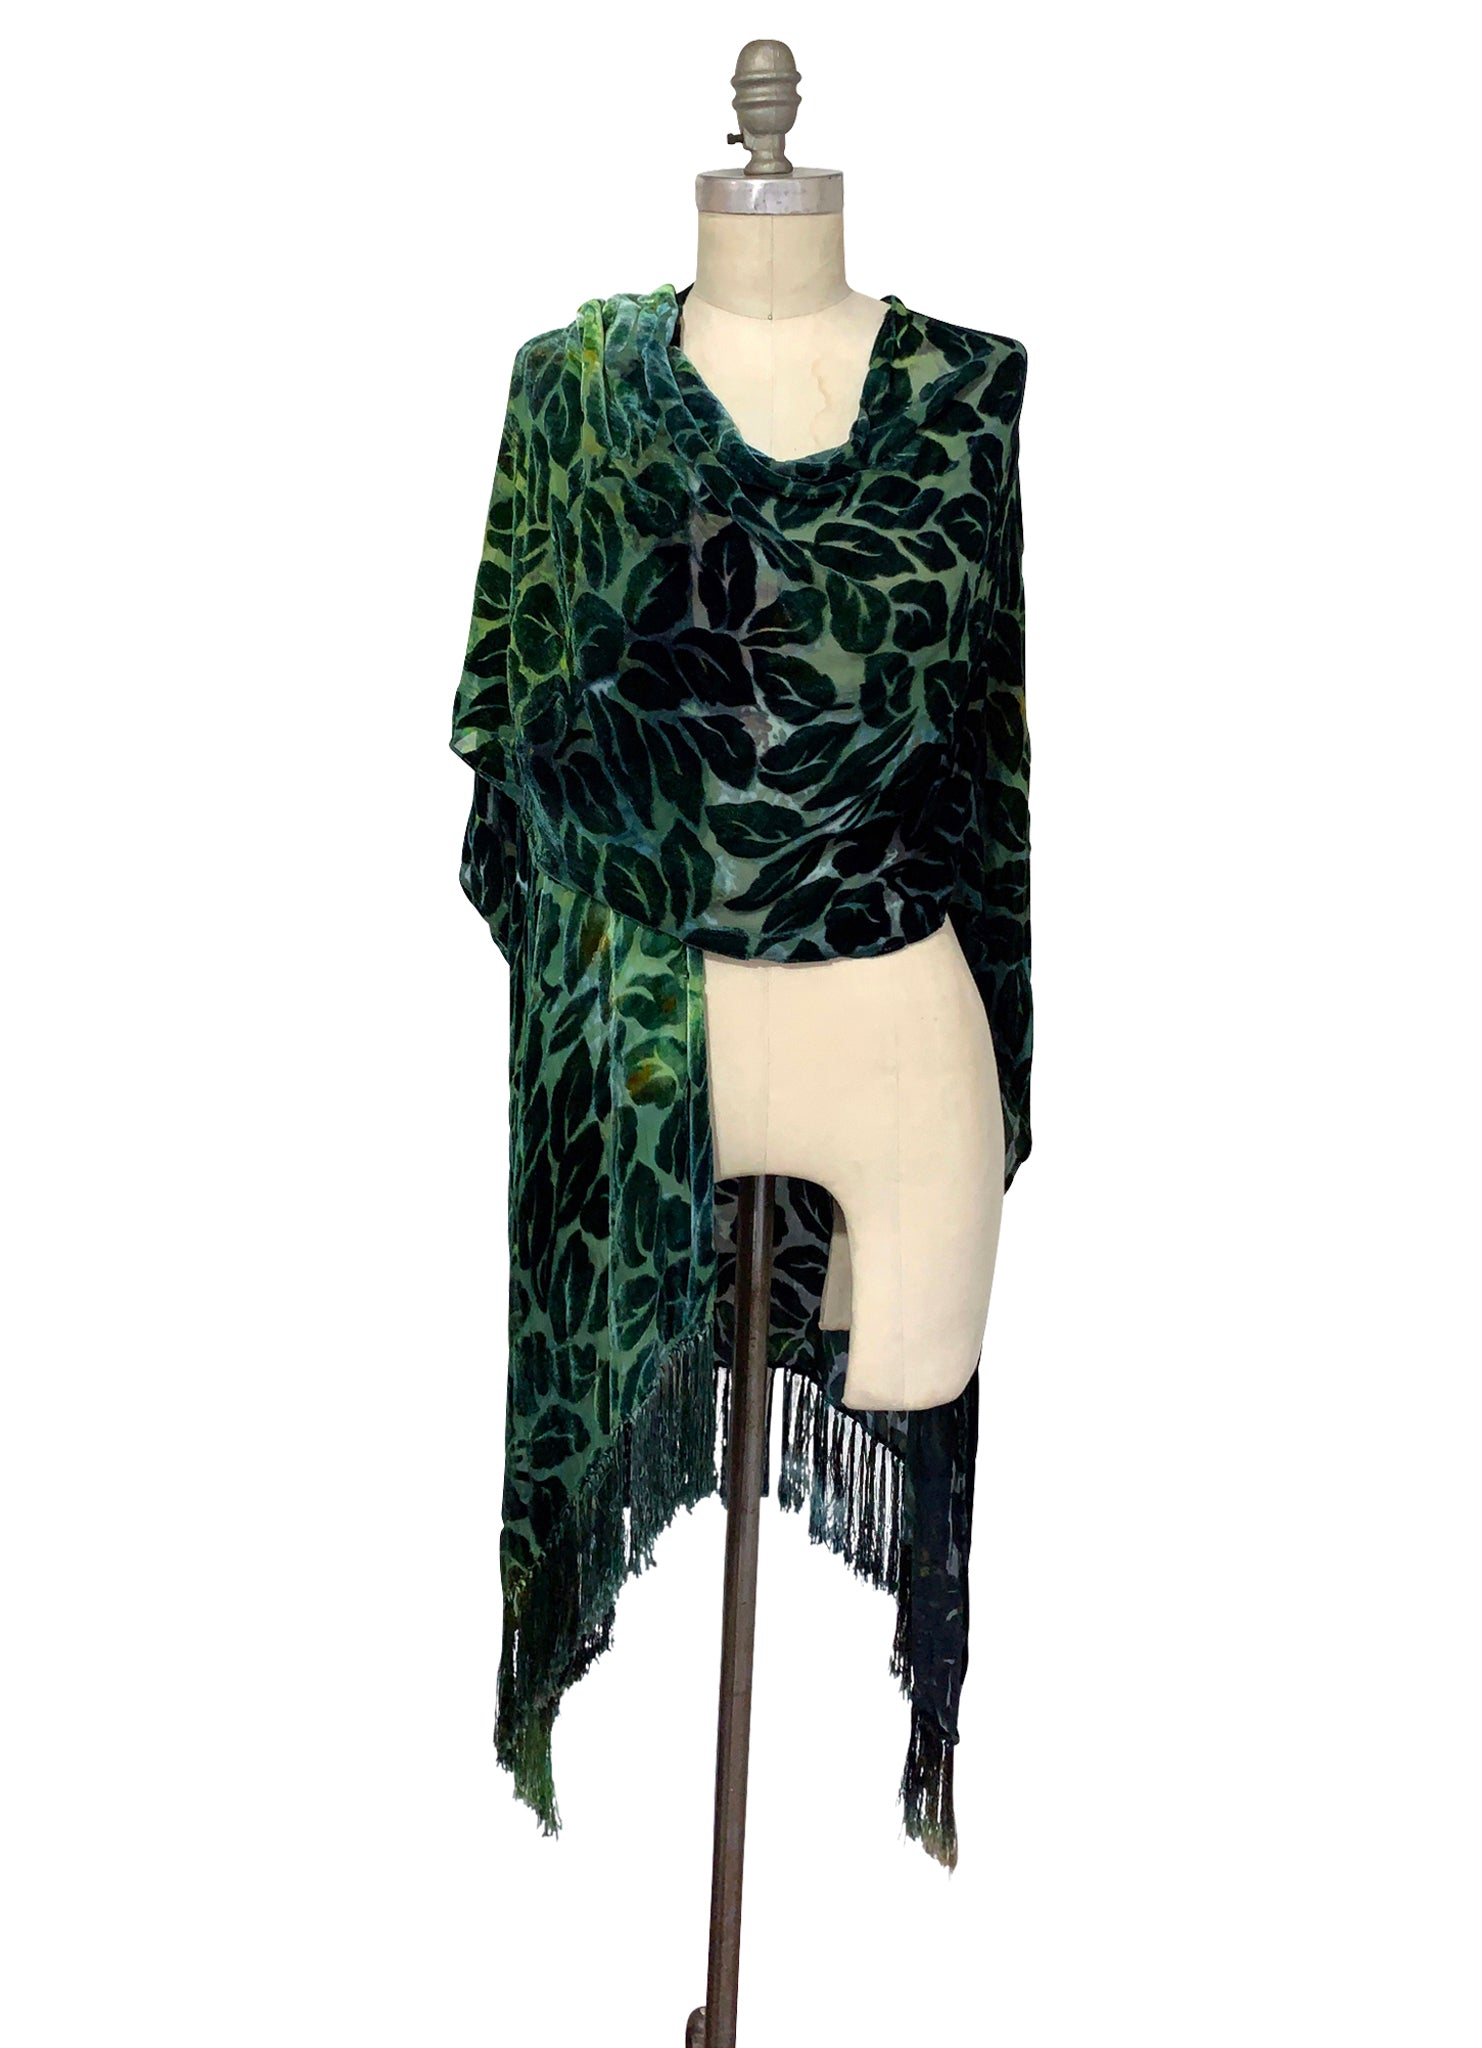 Velvet Burn-Out Fringe Shawl in Woodland Camo - Velvet Burnout Fringe Shawls - Dyetology